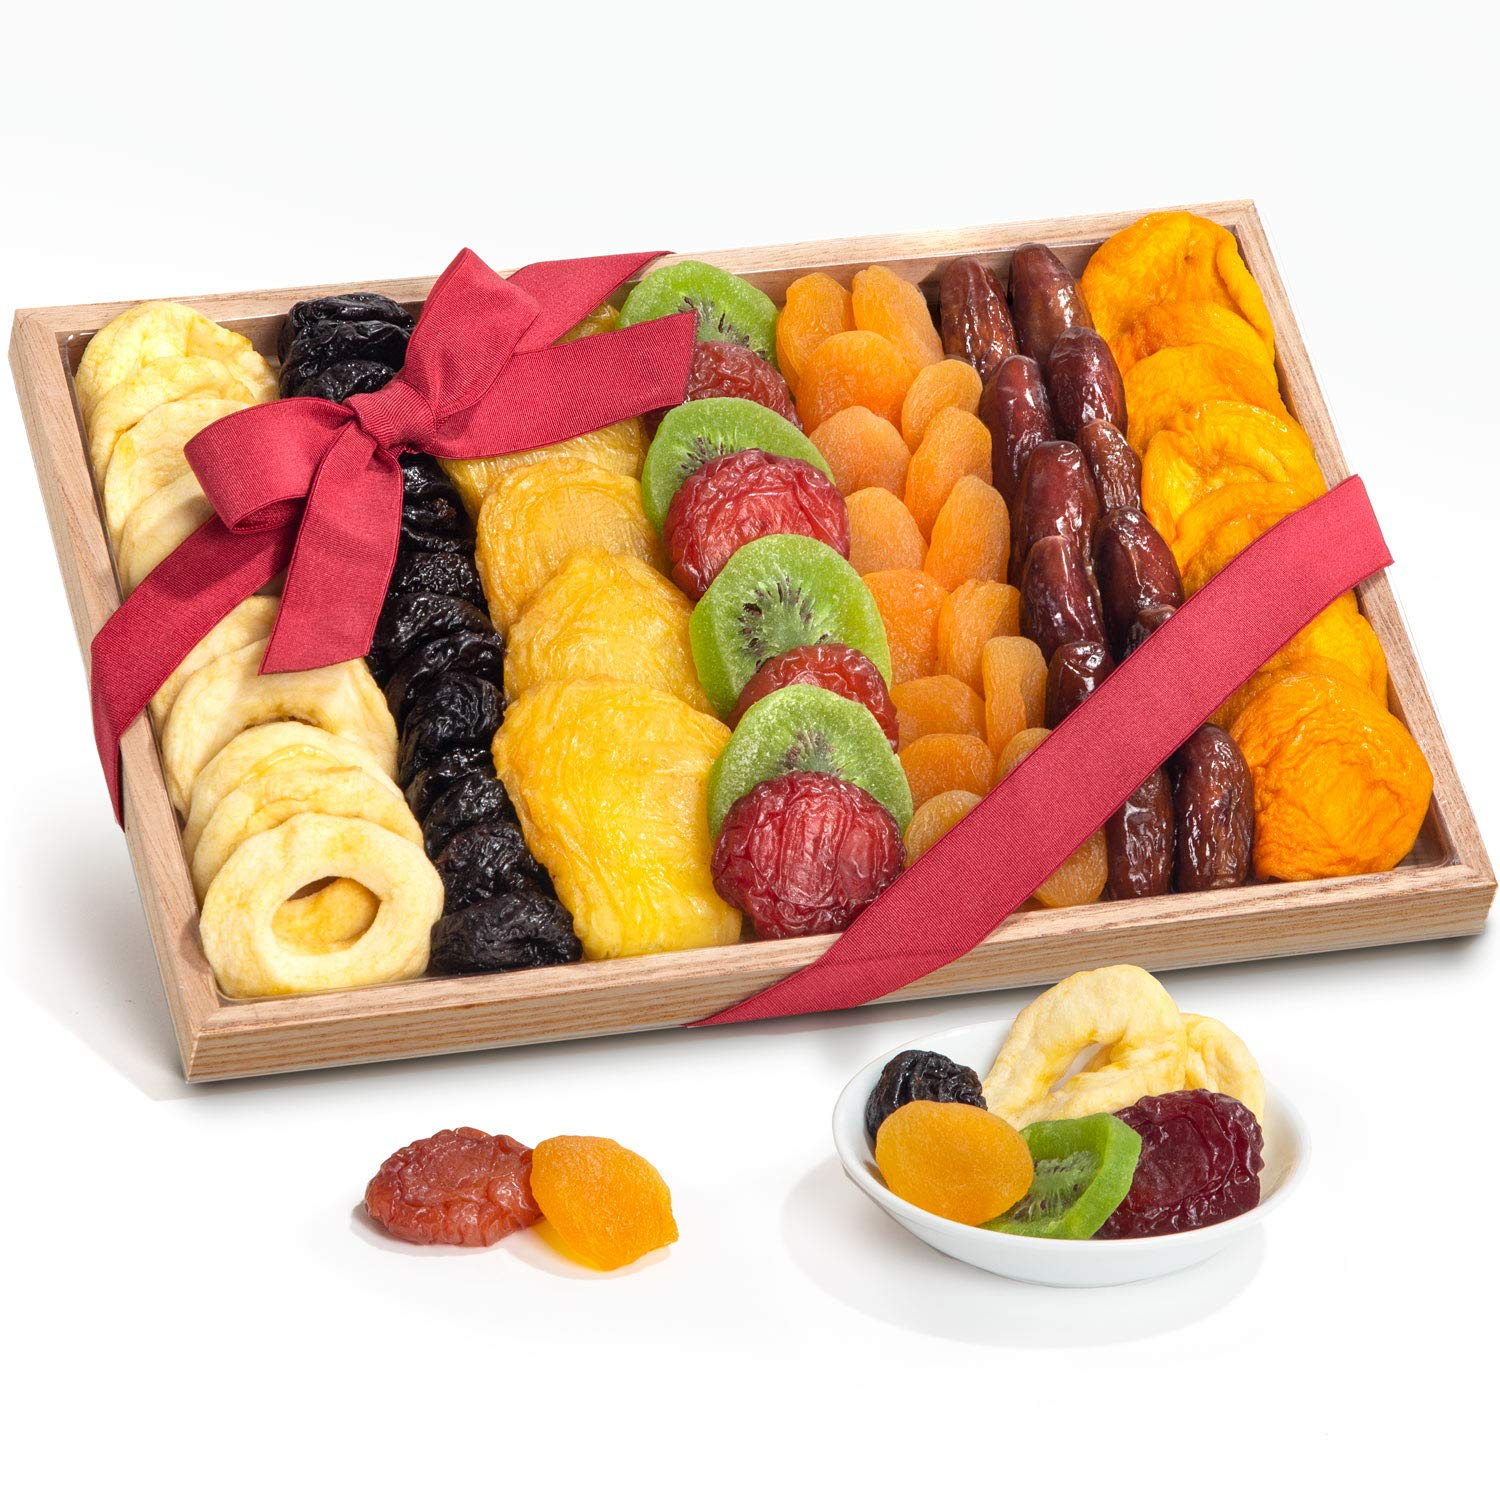 Simply Dried Fruit Gift Tray Basket Arrangement Nut Free for Holiday Birthday Healthy Snack Business Gourmet Food Platter 25 oz